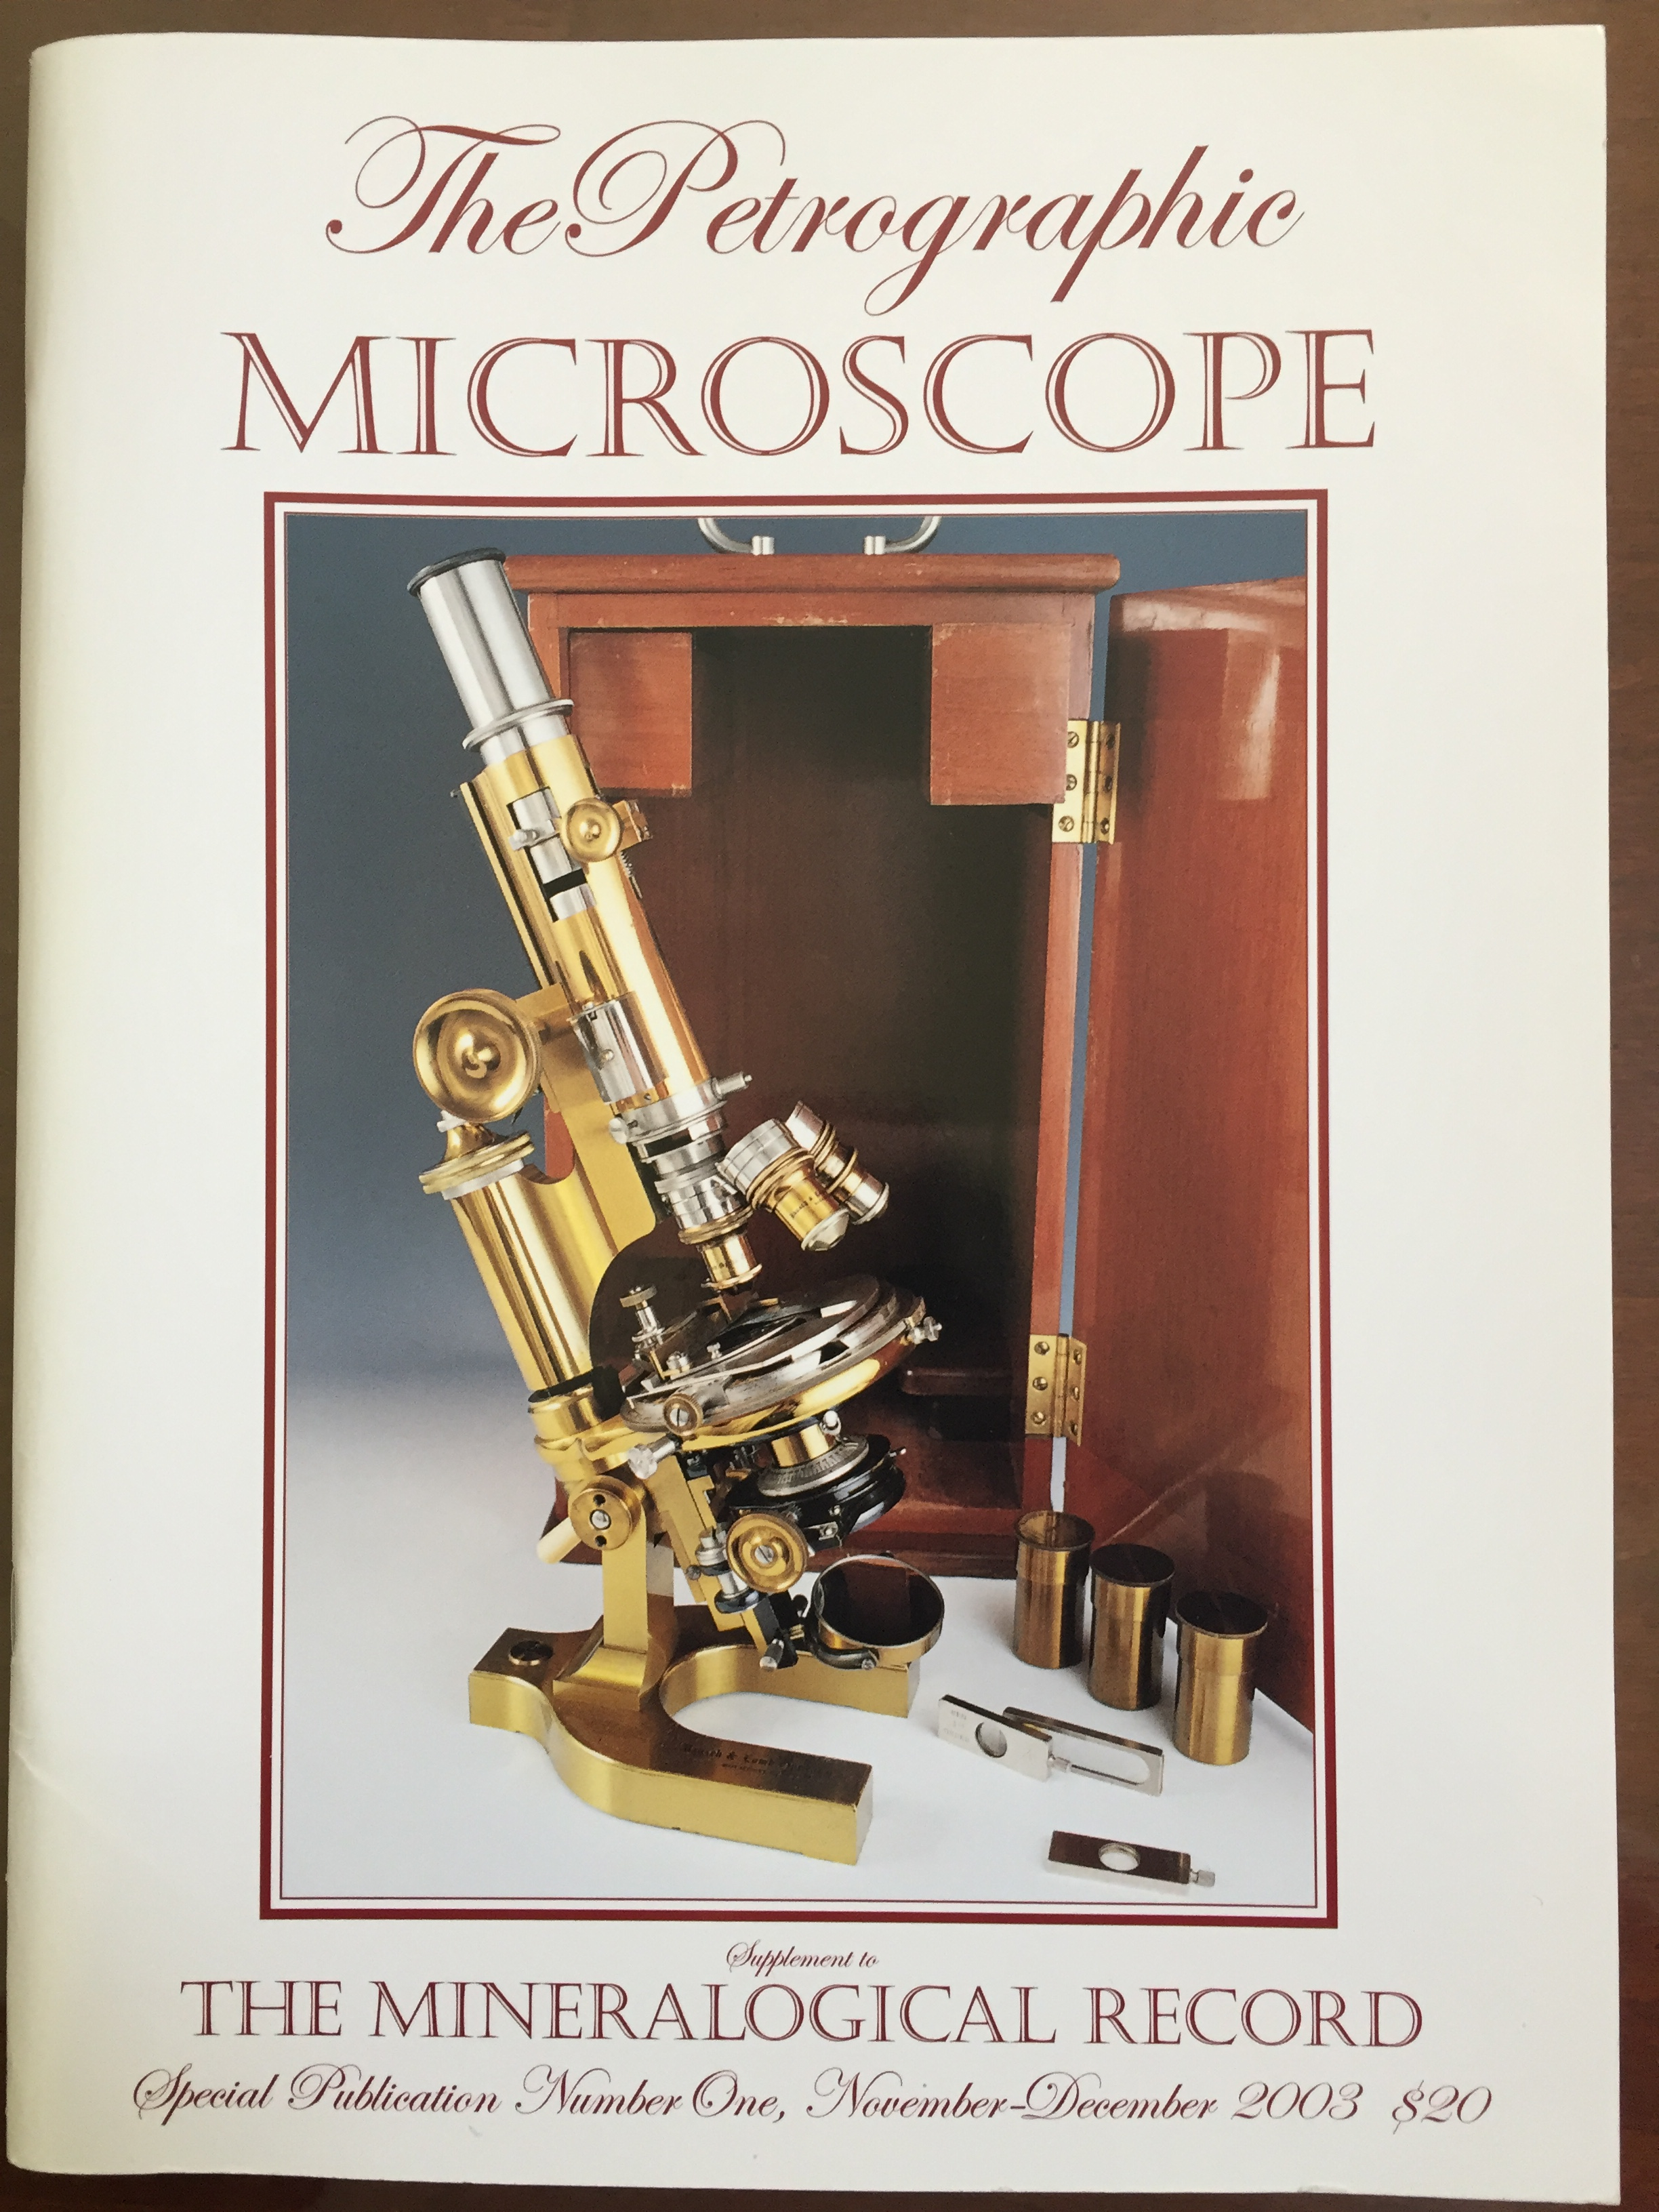 Image for The Petrographic Microscope: Evolution of a Mineralogical Research Instrrument